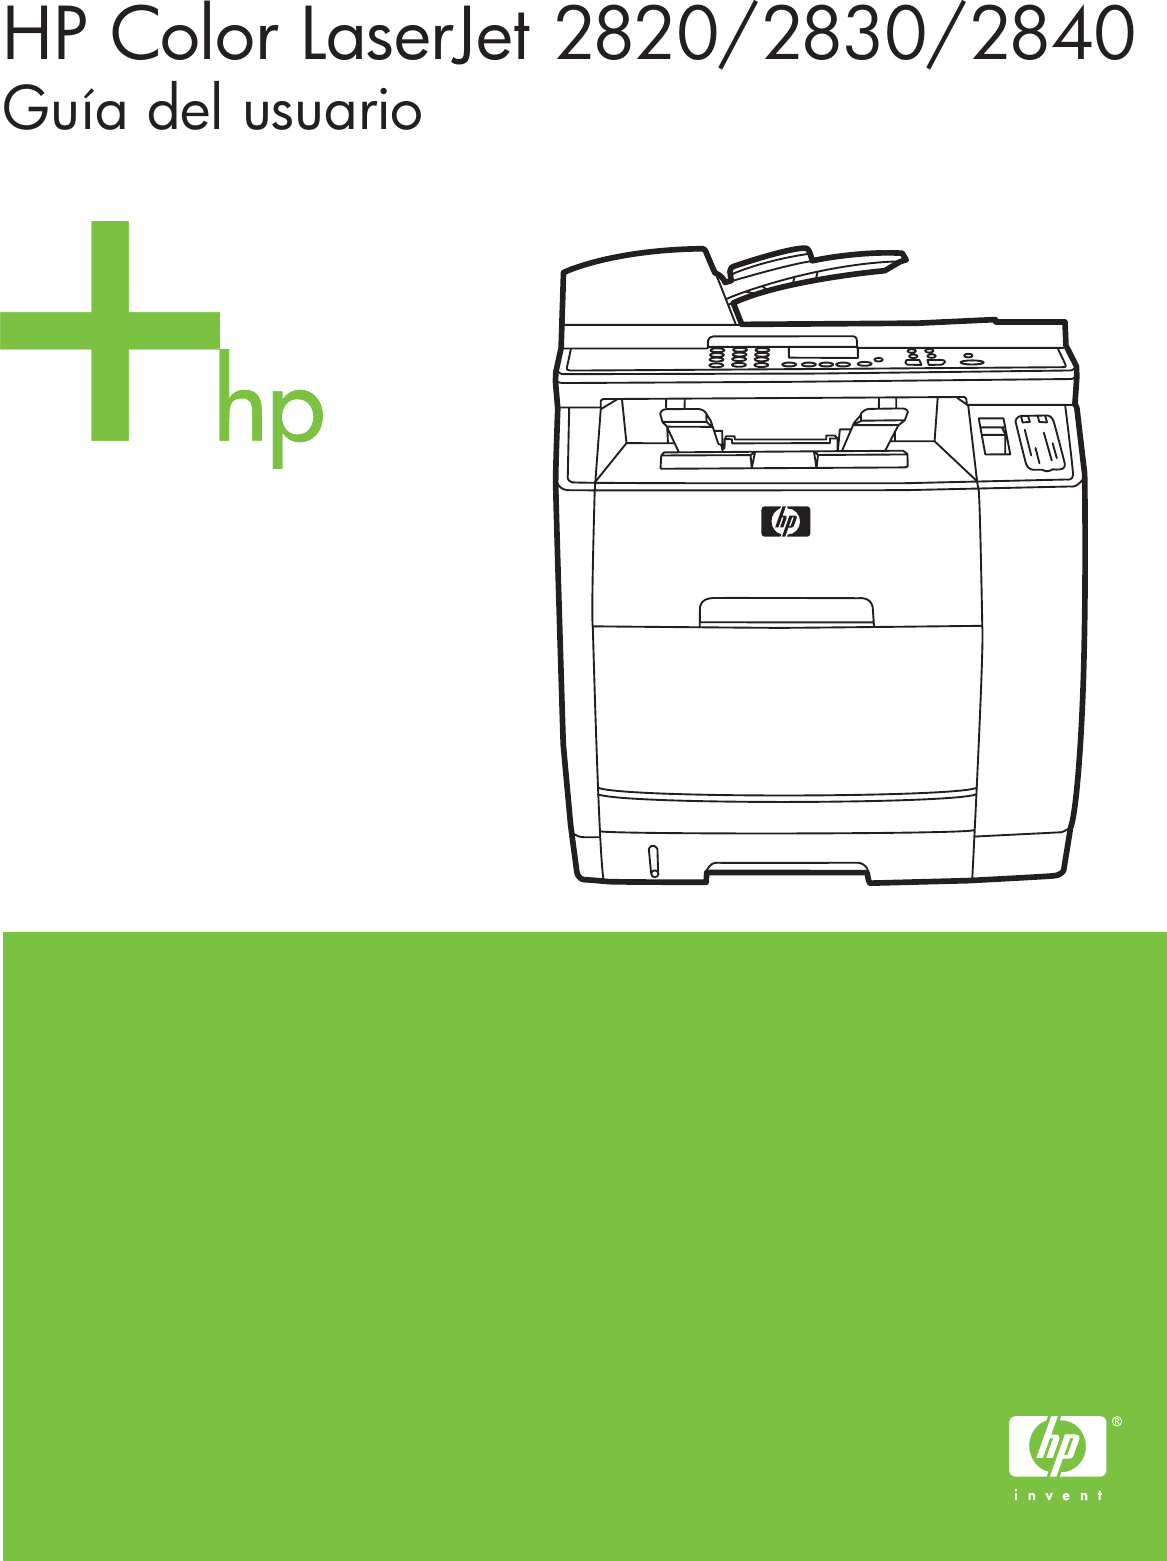 HP 2840 TWAIN WINDOWS DRIVER DOWNLOAD